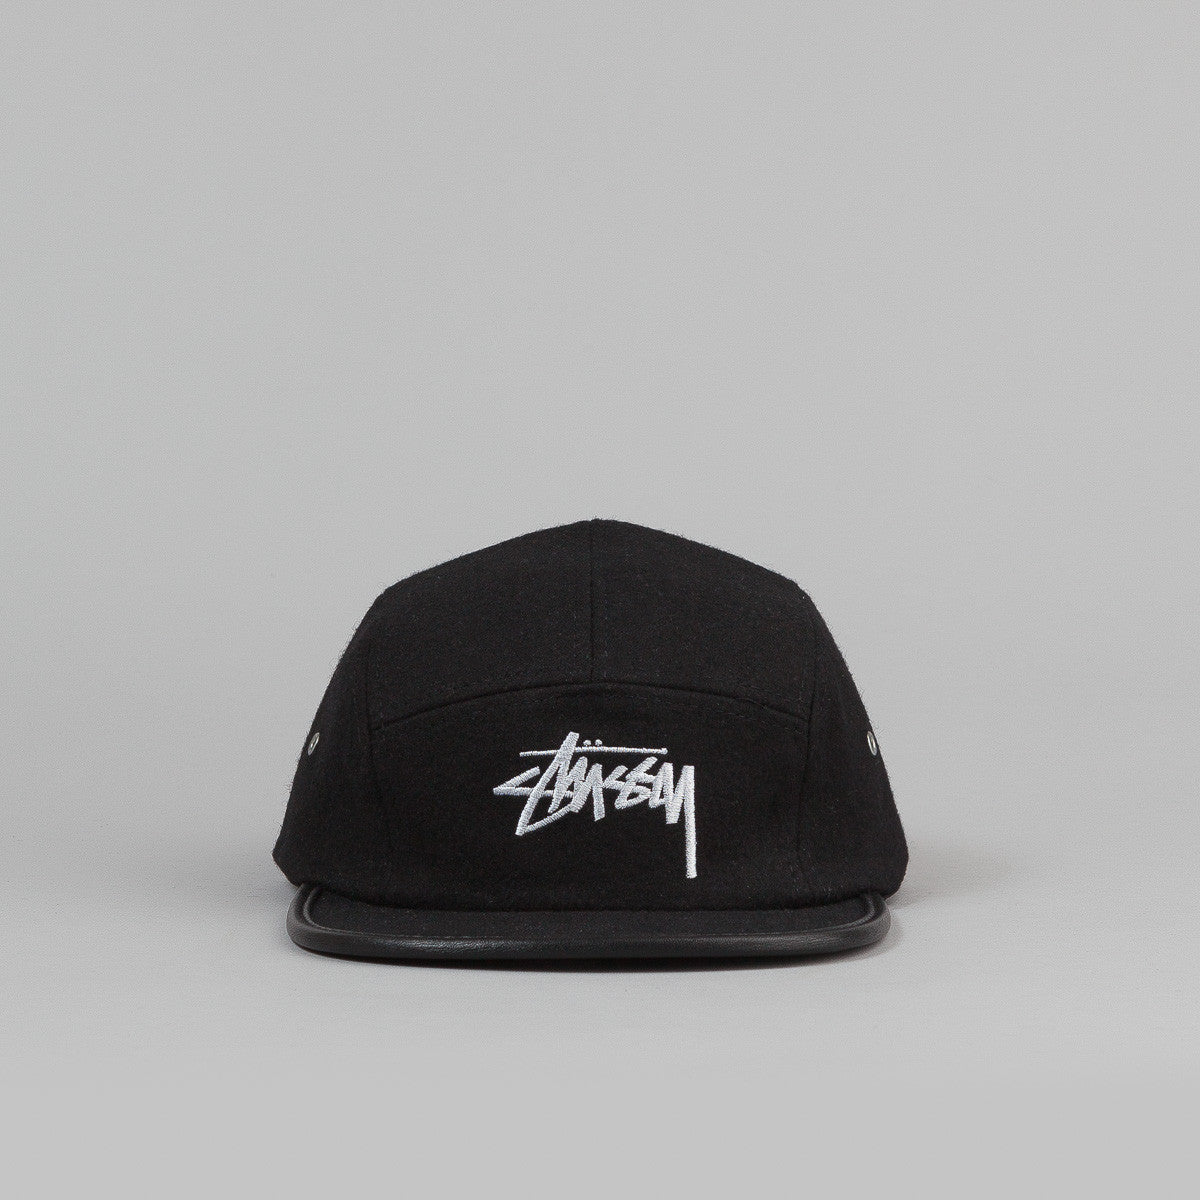 Stussy Melton Wool Camp Cap Black